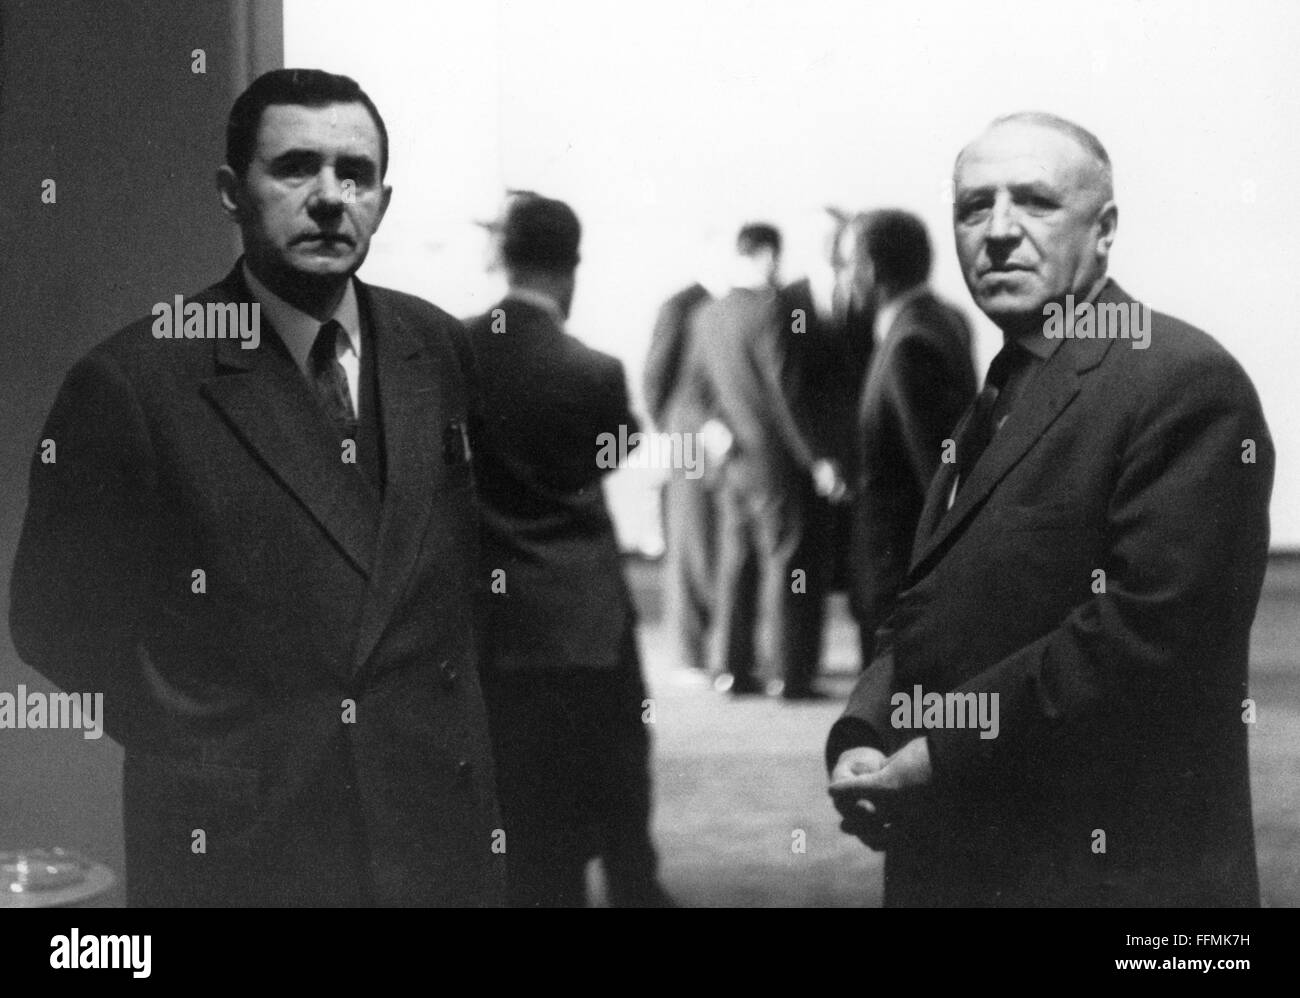 Gromyko, Andrei Andreyevich, 18.7.1909 - 2.7.1989, soviet politician (CPSU), foreign minister of the USSR 14.2.1957 - Stock Image